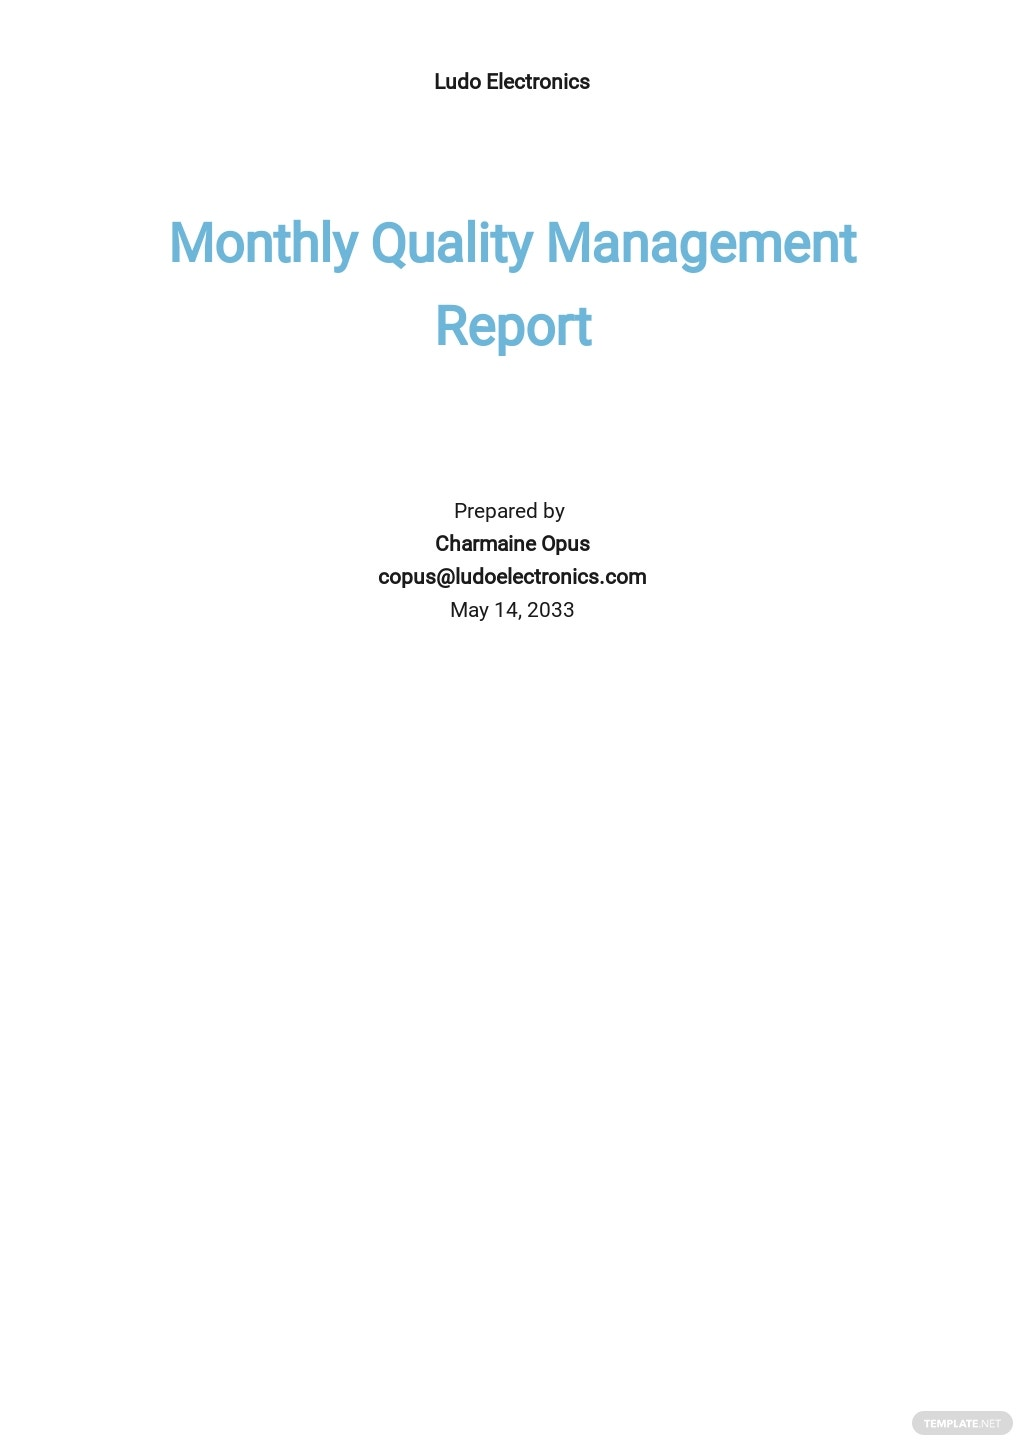 Monthly Quality Management Report Template.jpe